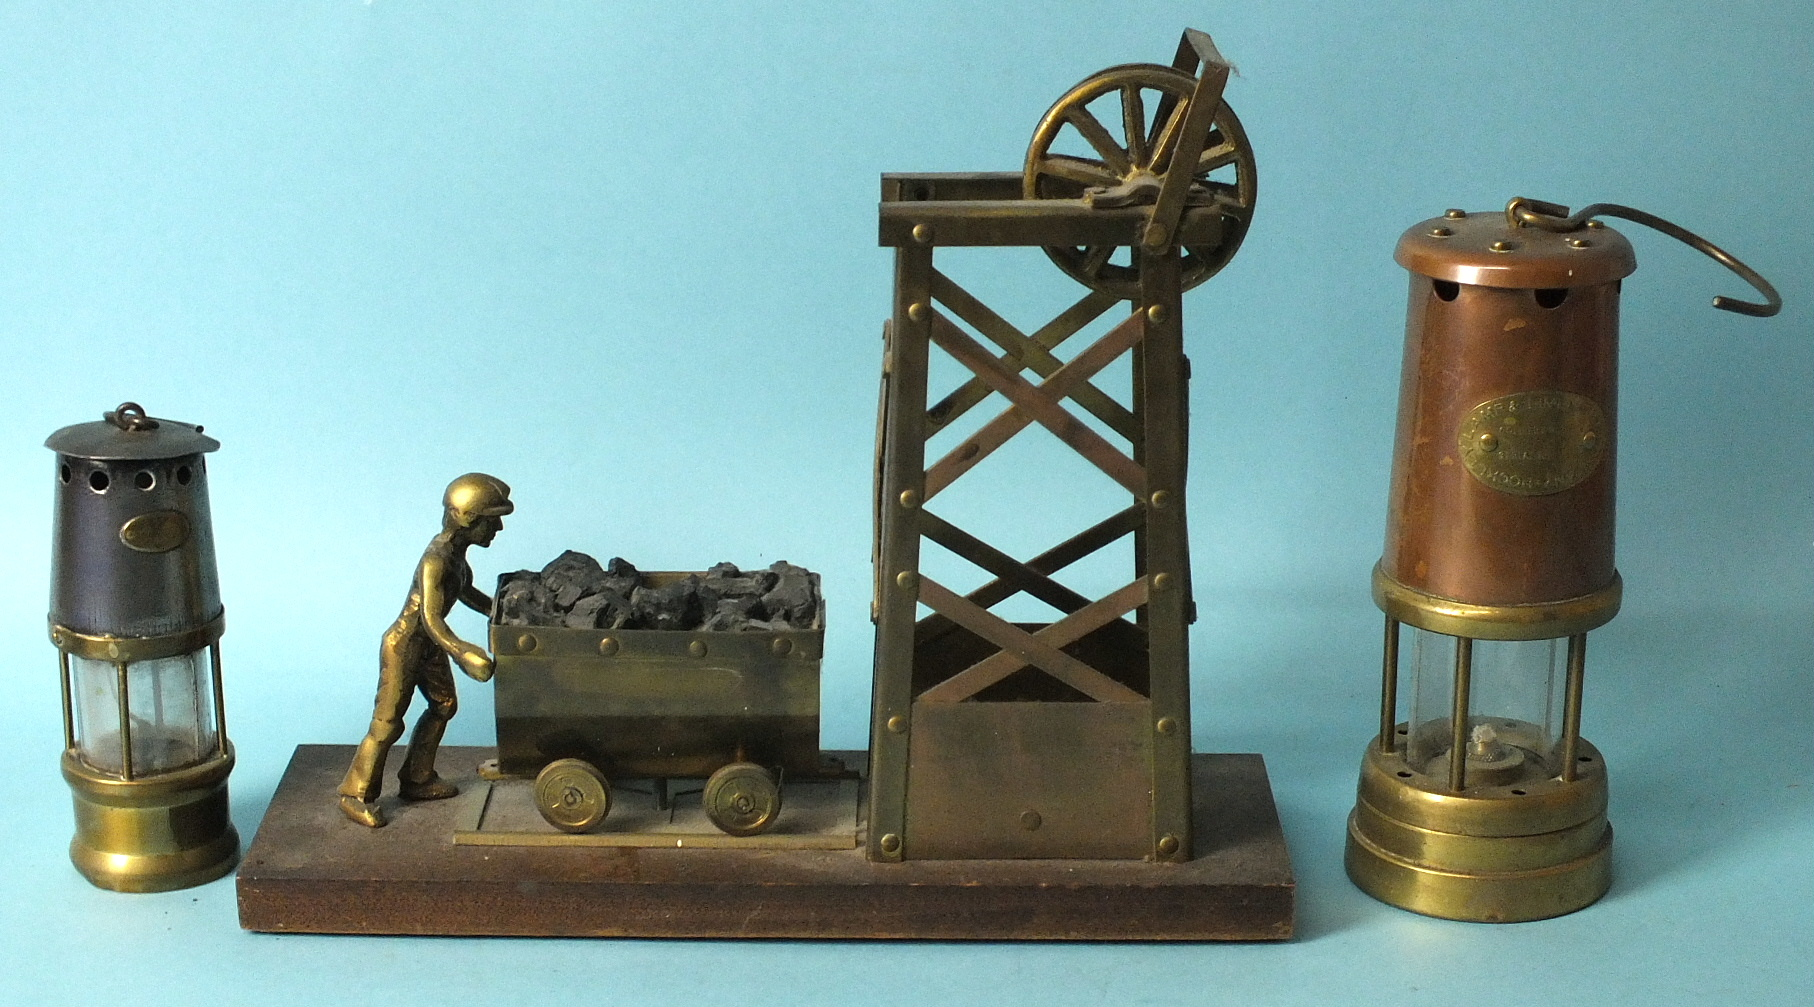 Lot 606 - A brass model of a colliery and figure pushing a wagon of coal, a Hockley Lamp & Limelight Co.